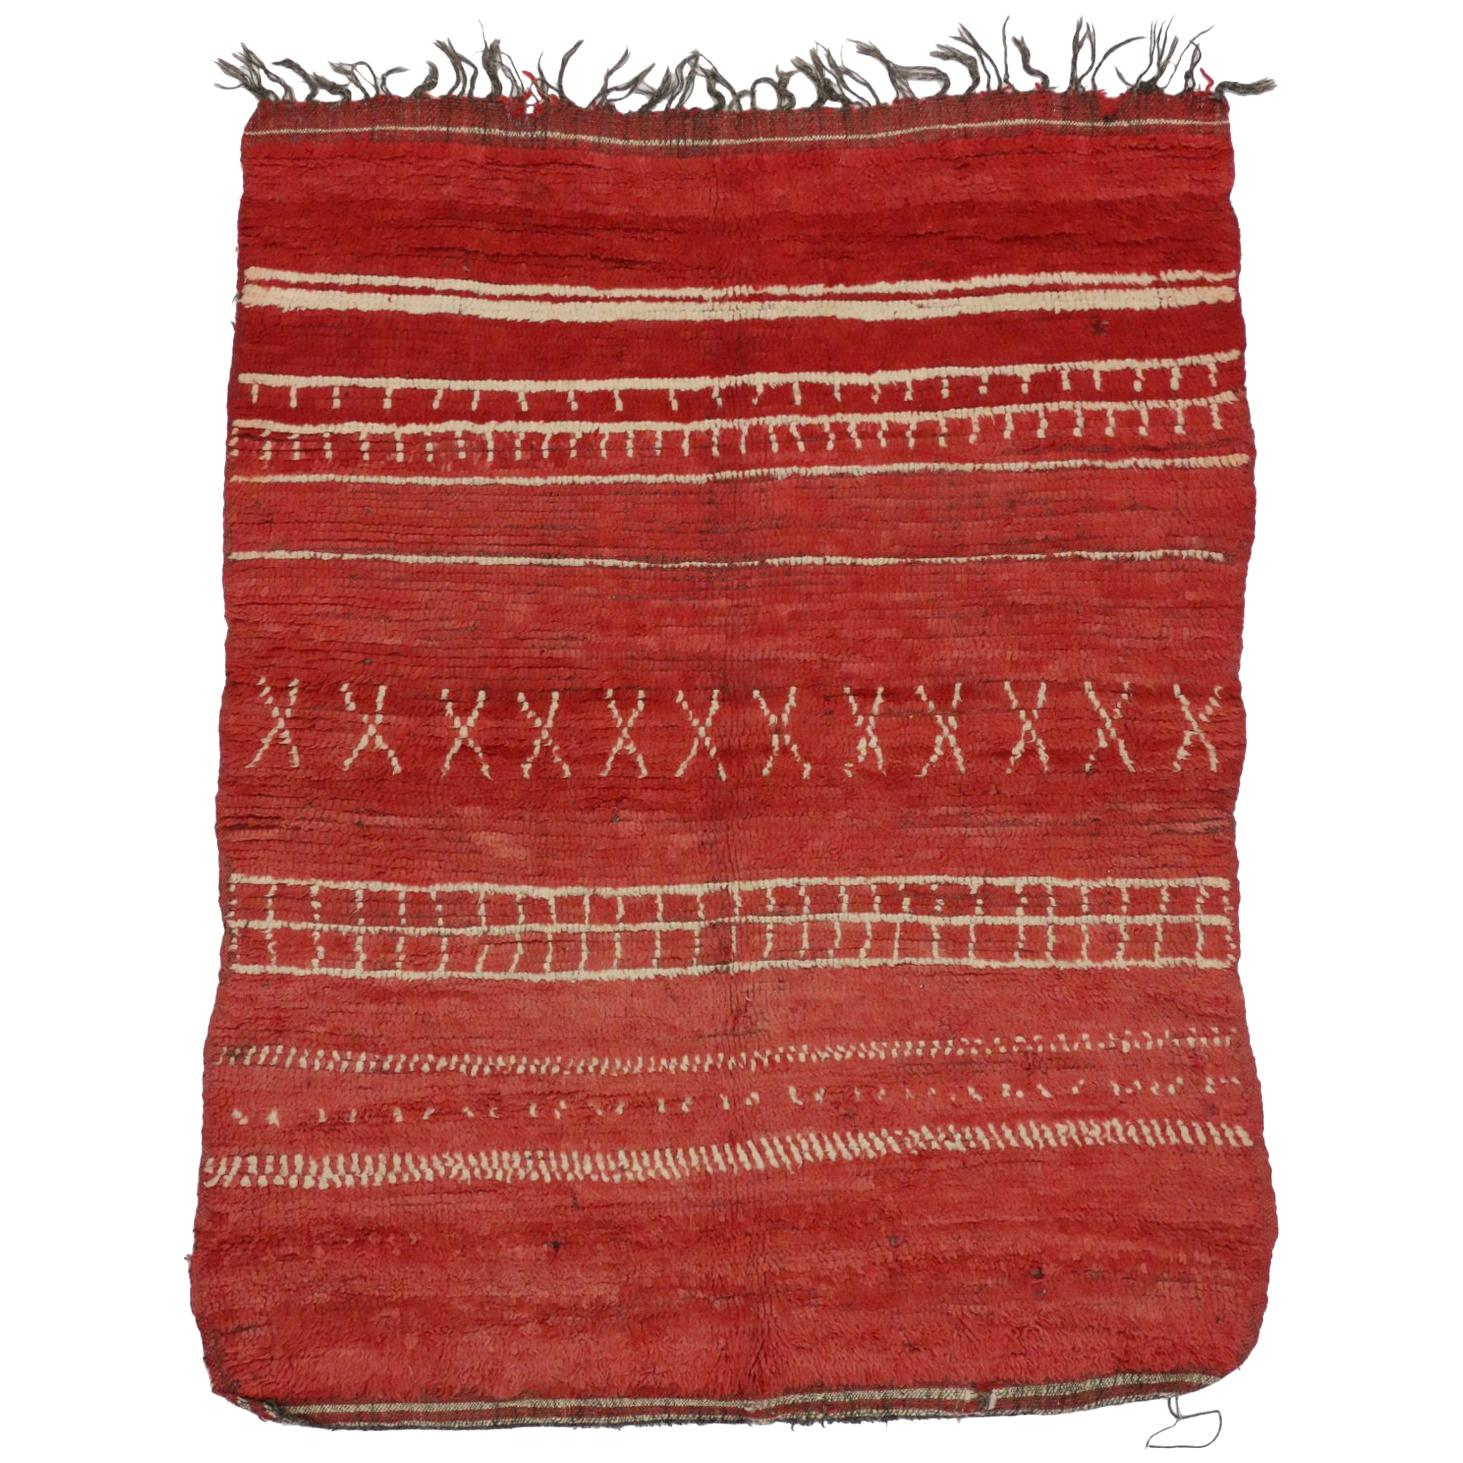 Vintage Red Moroccan Rug with Tribal Style, Berber Moroccan Rug